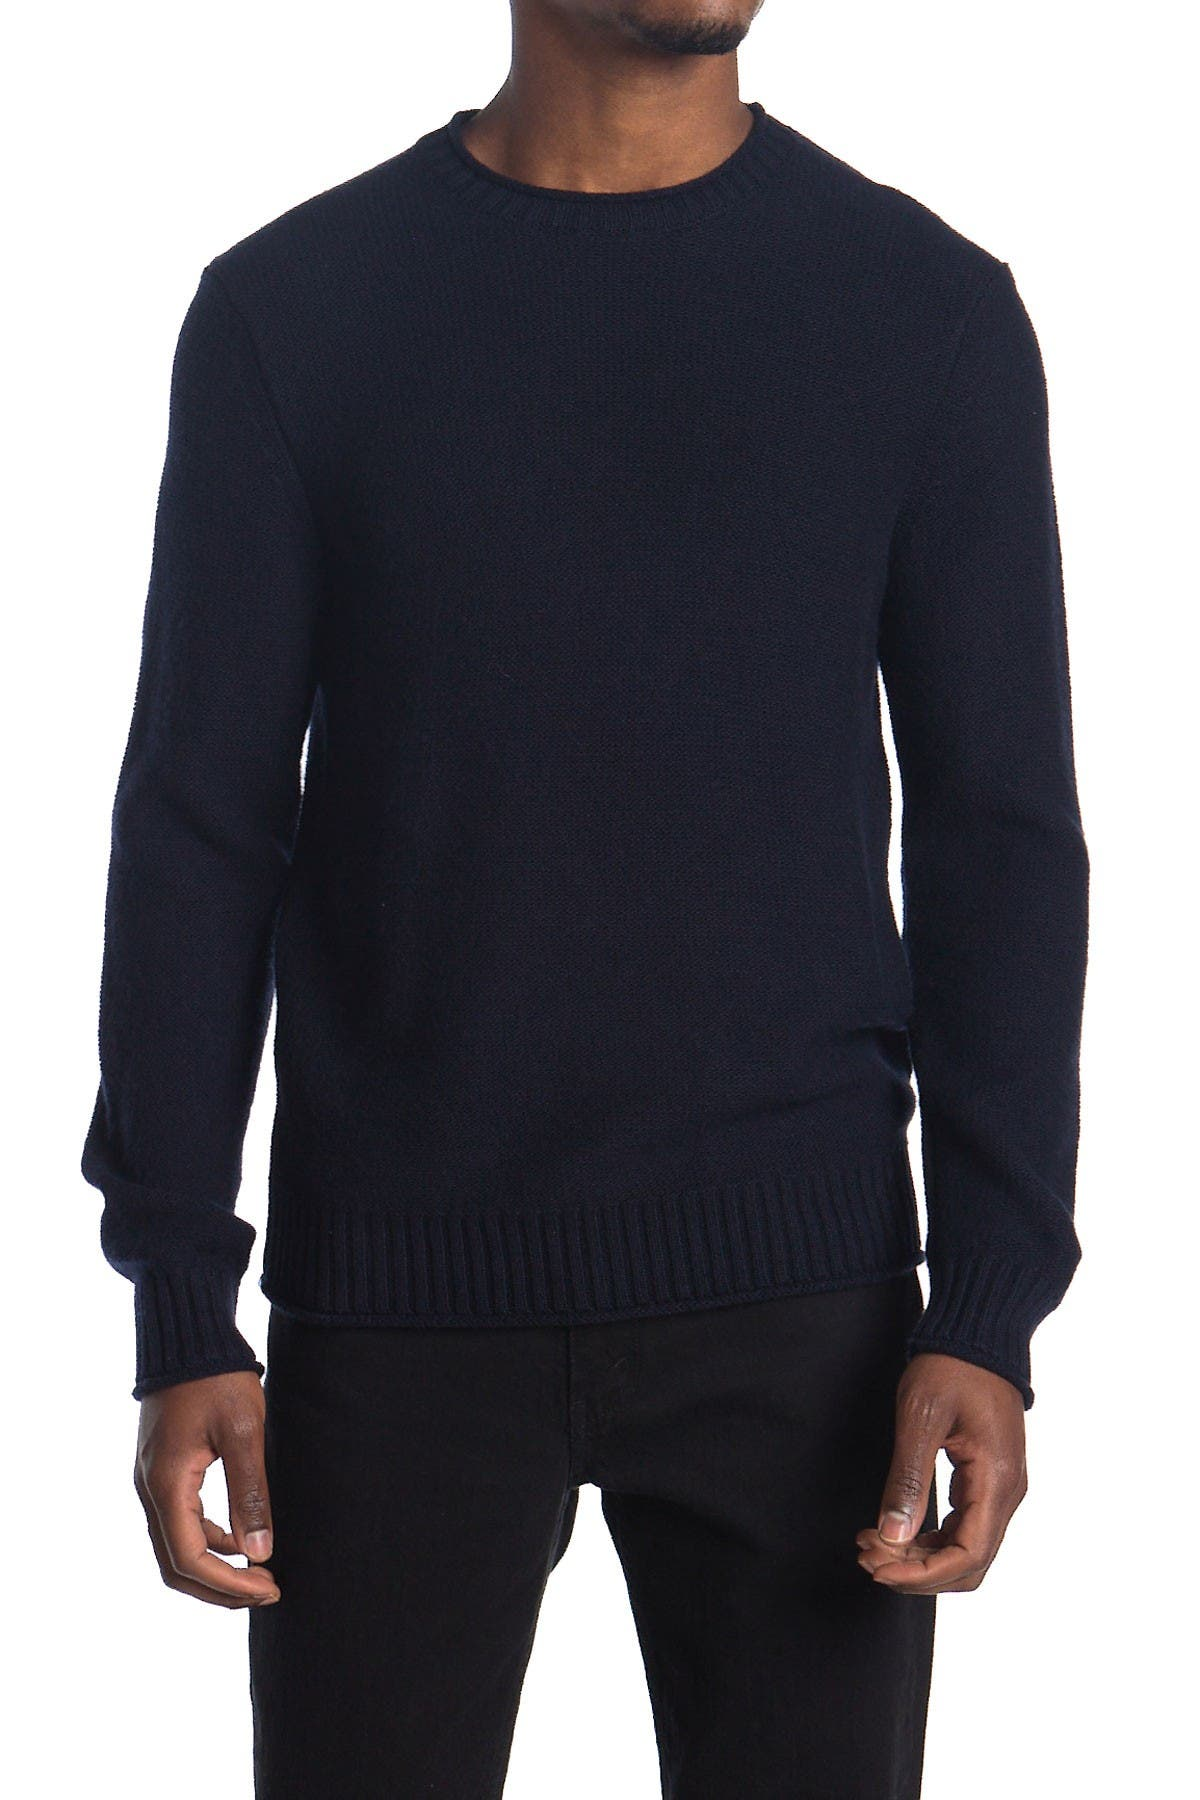 Image of Stewart of Scotland Rolled Edge Crew Neck Sweater